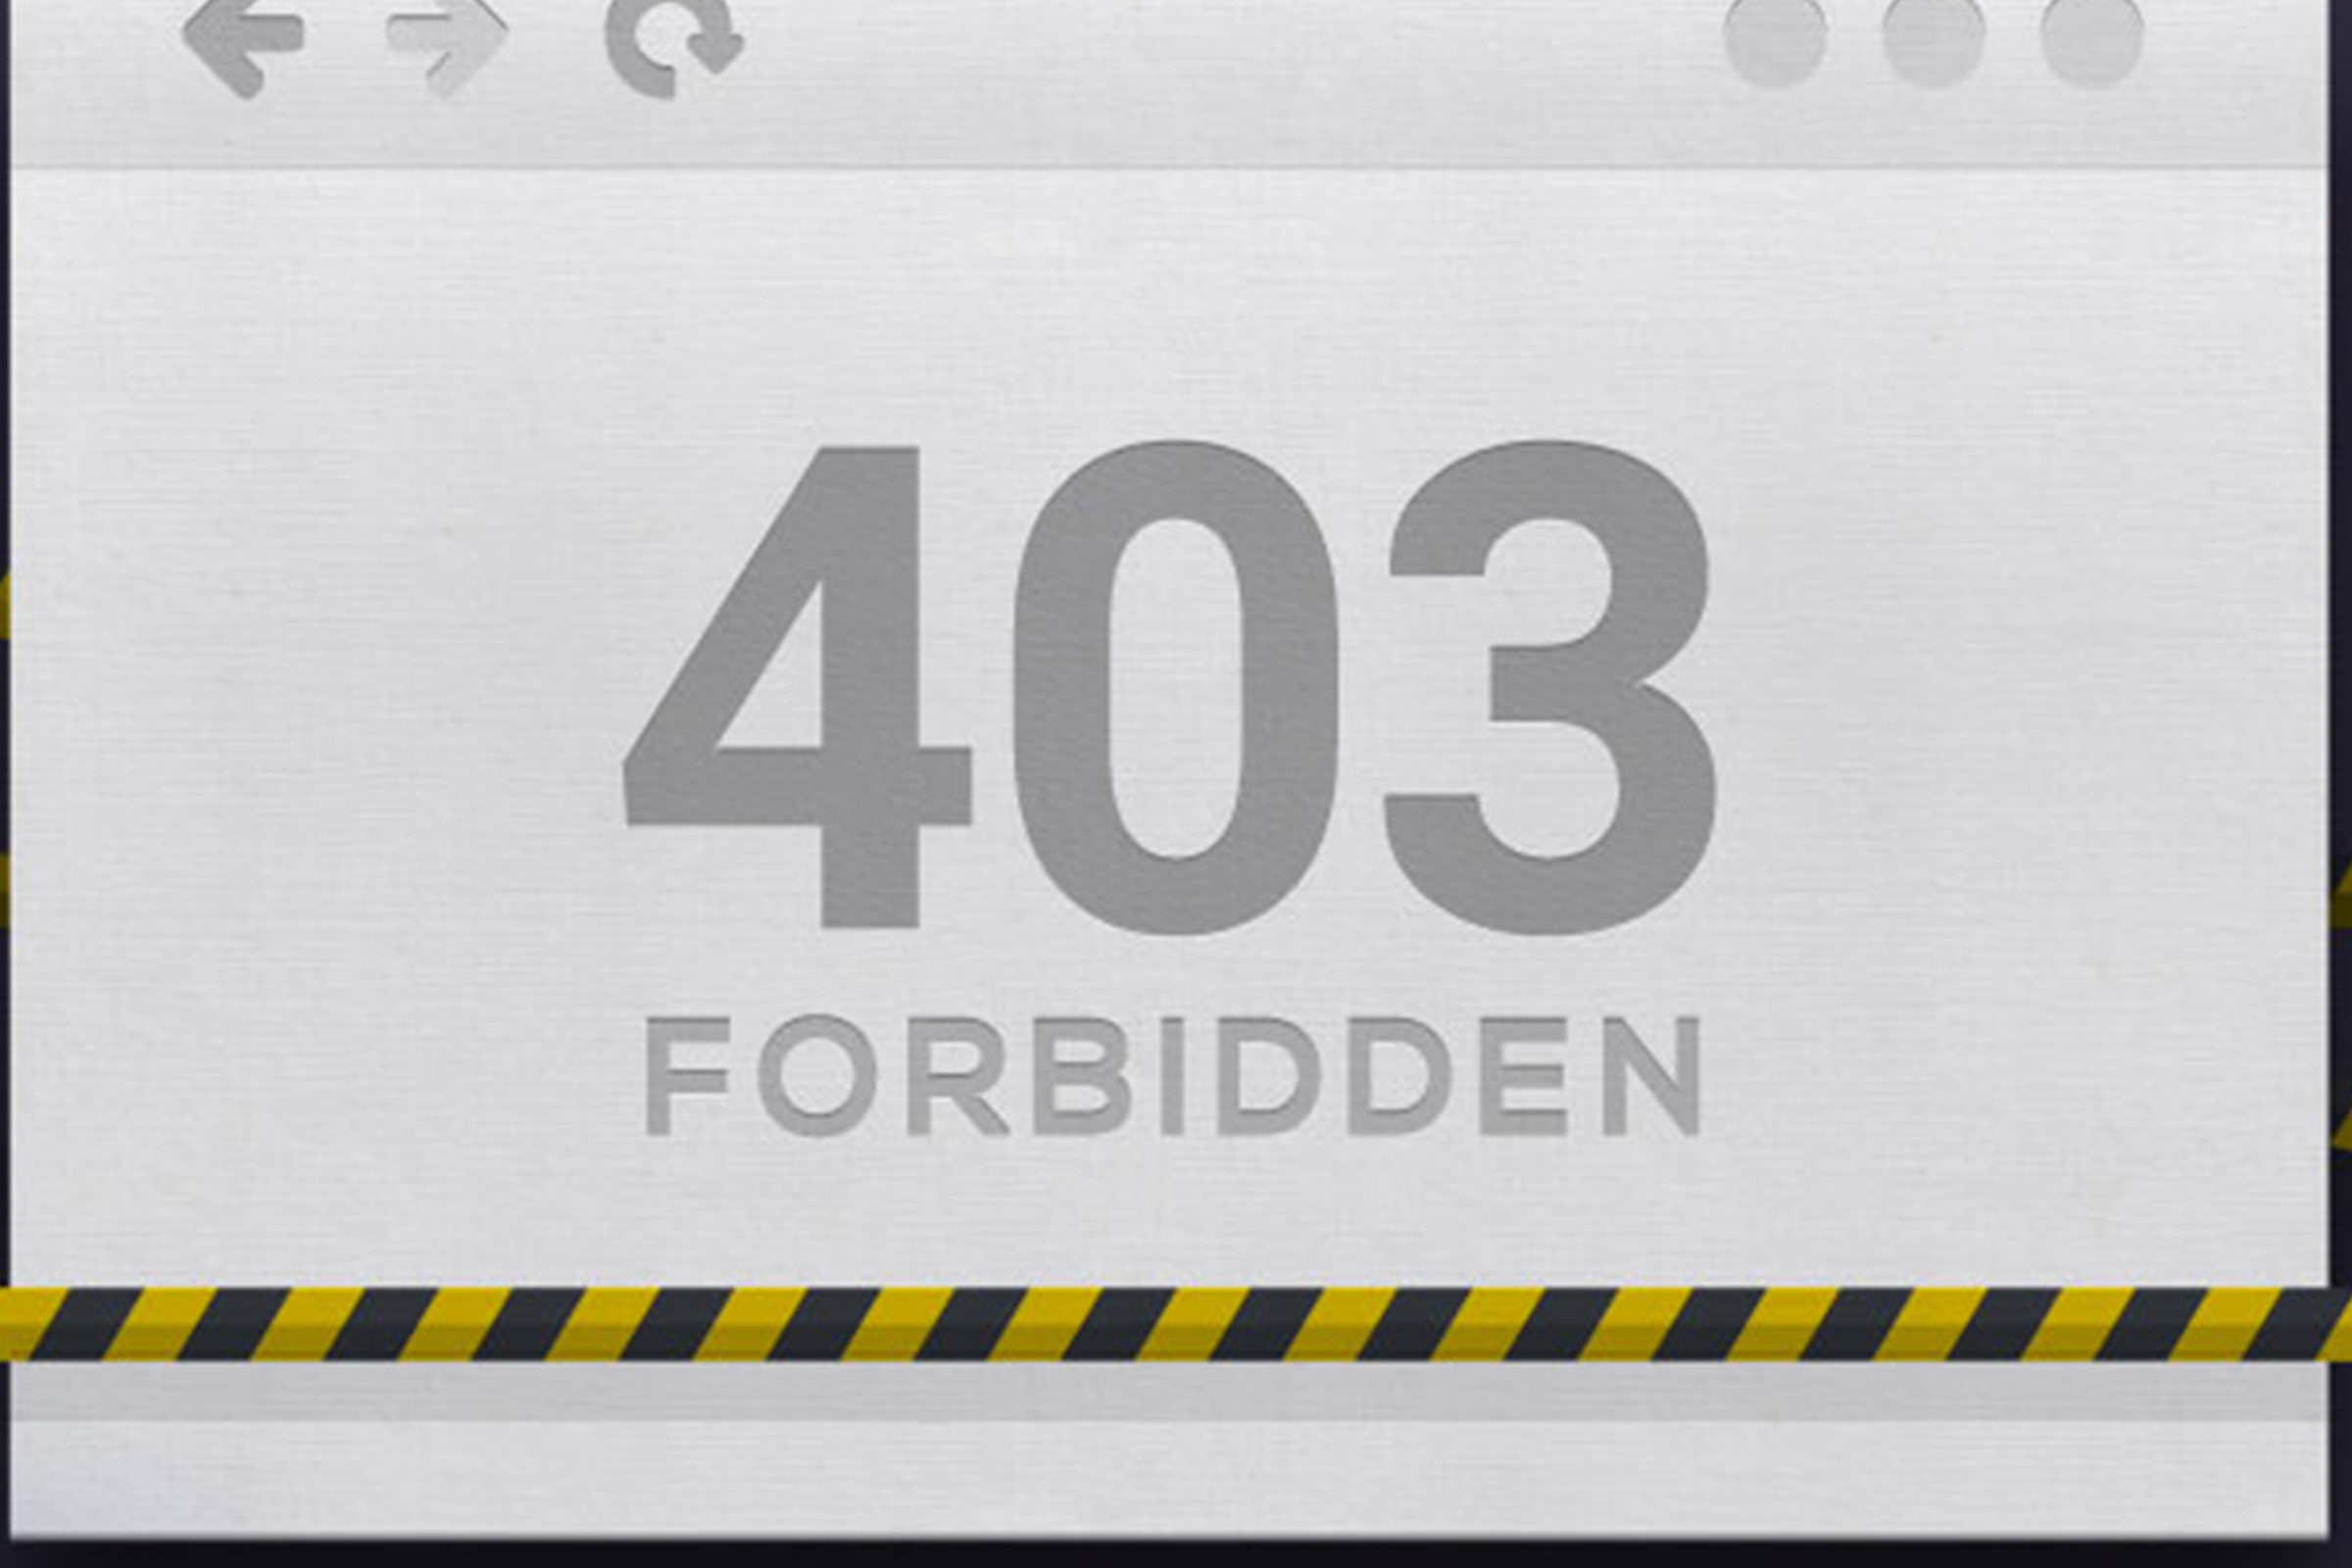 403 error message